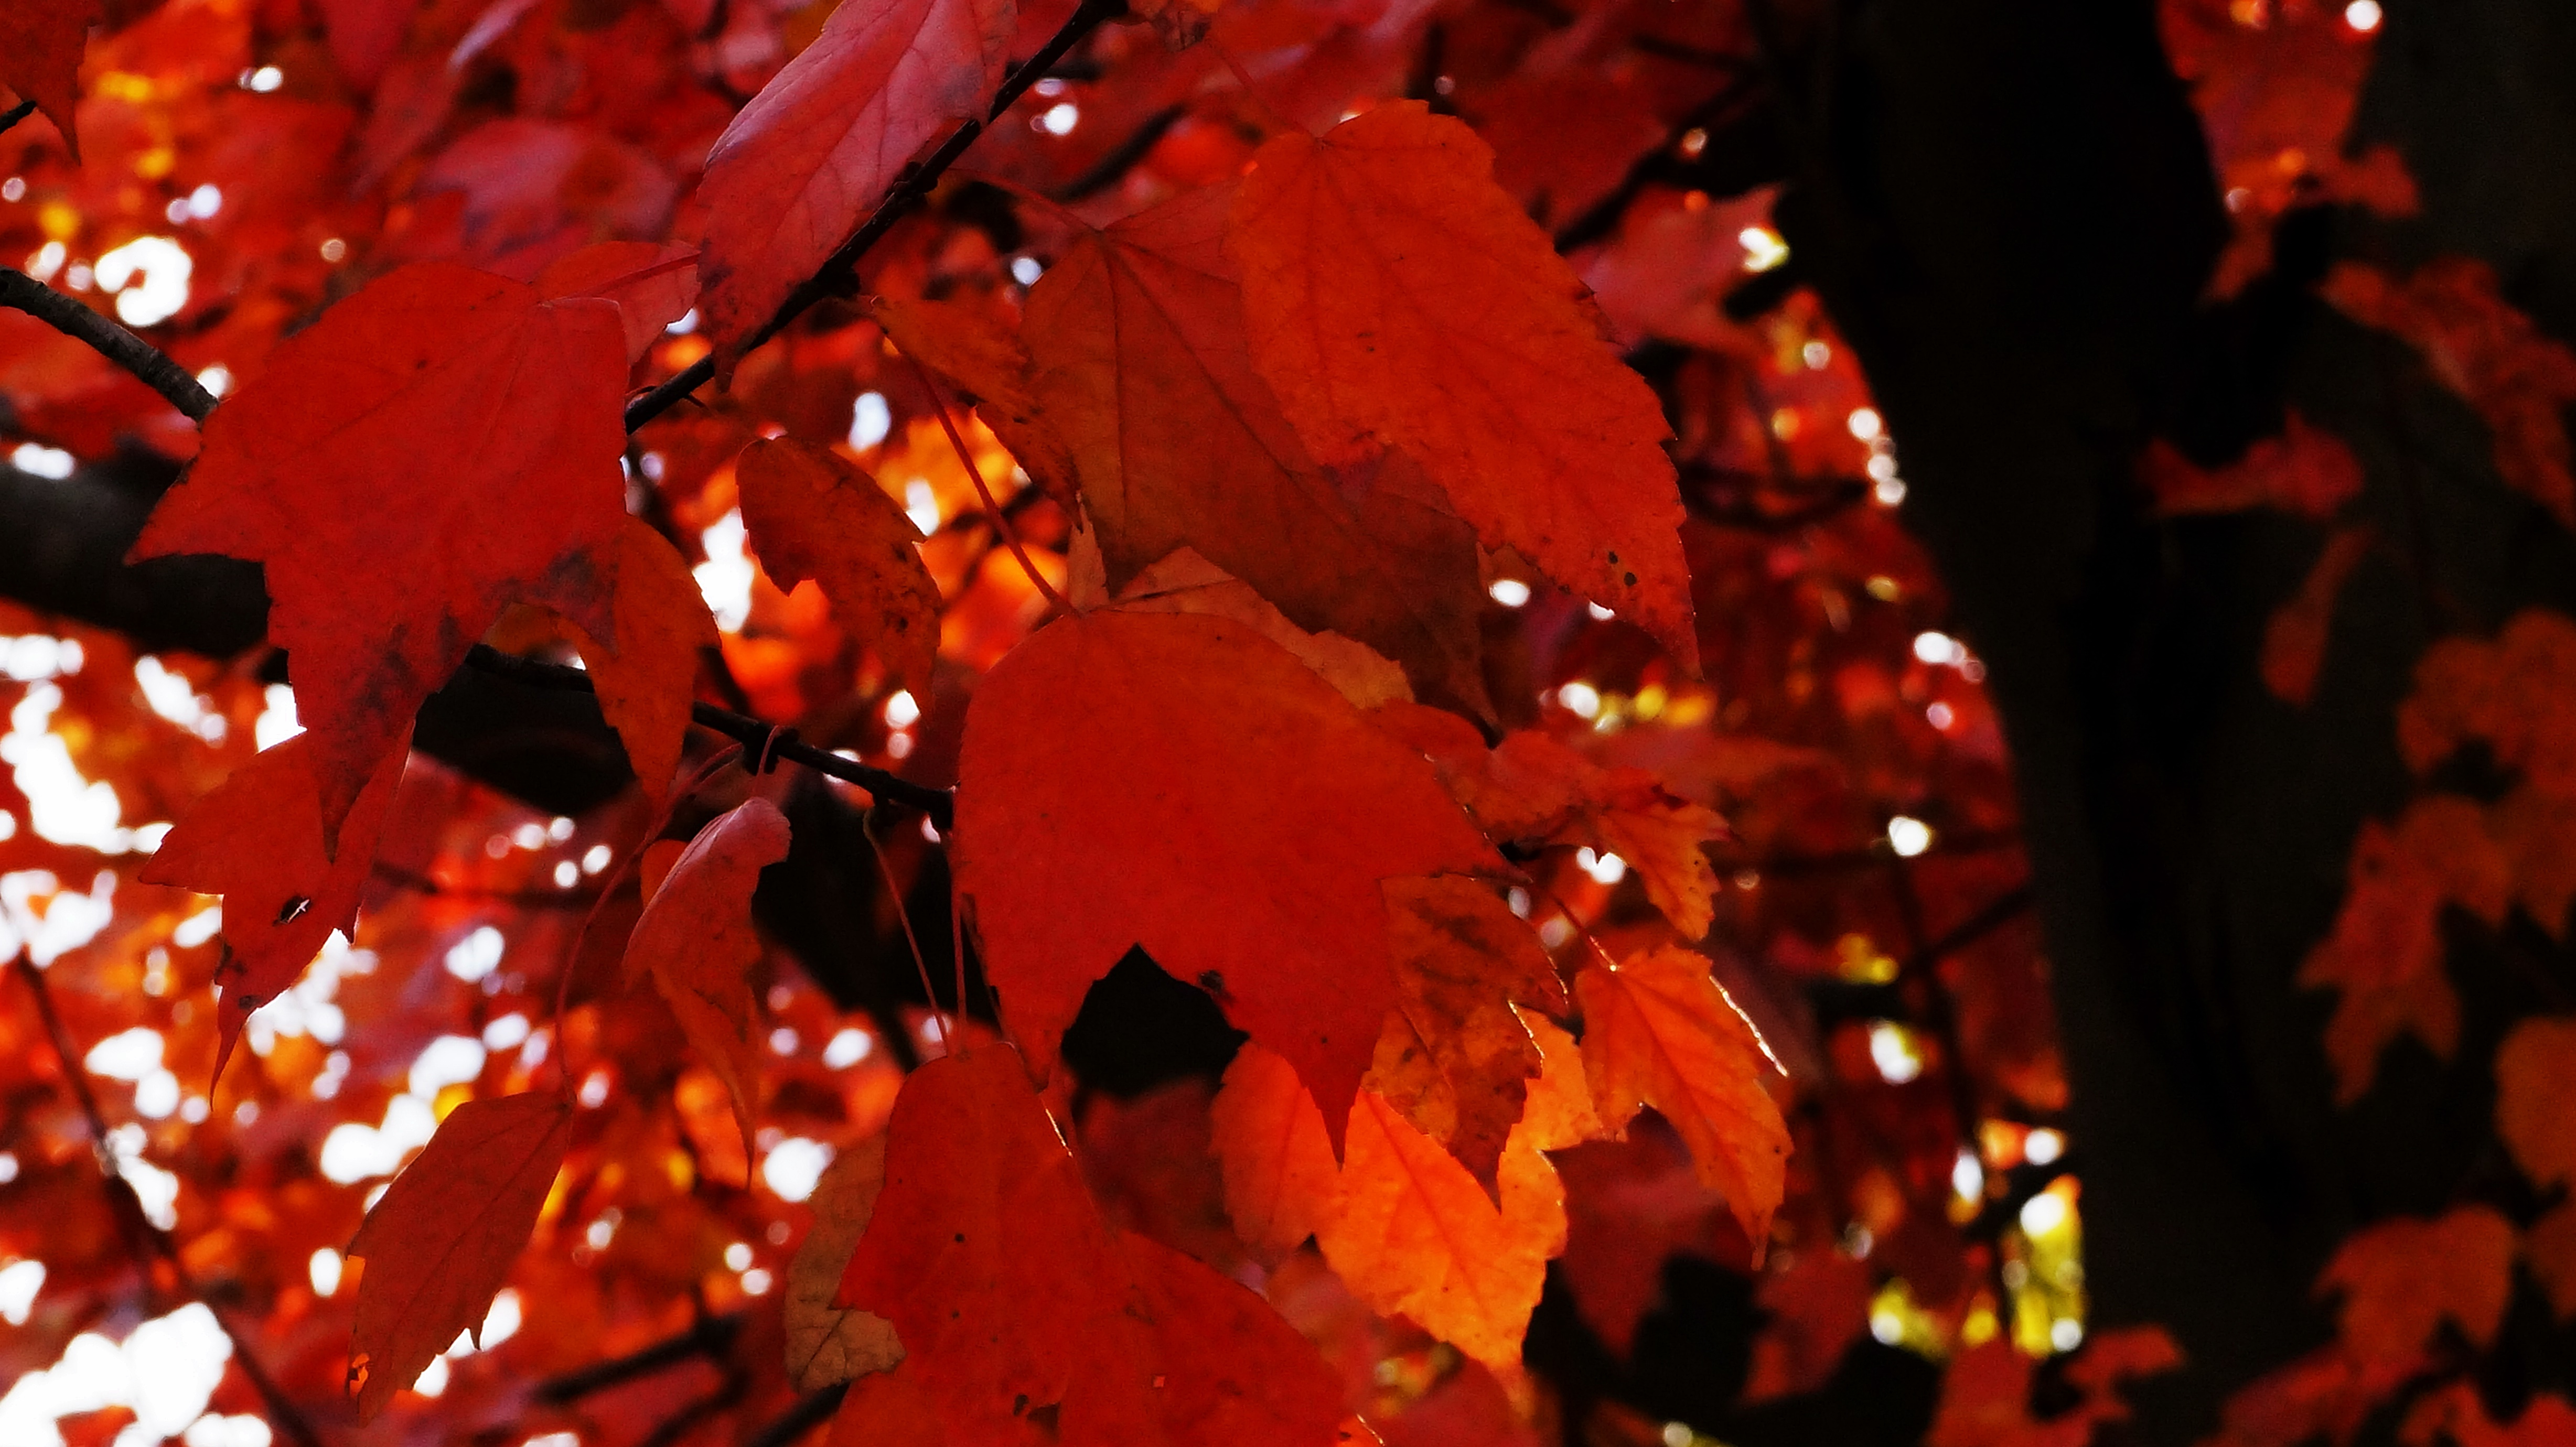 Fall Leaves Wallpaper For Ipad Red Leaves Tree Wallpapers High Quality Download Free